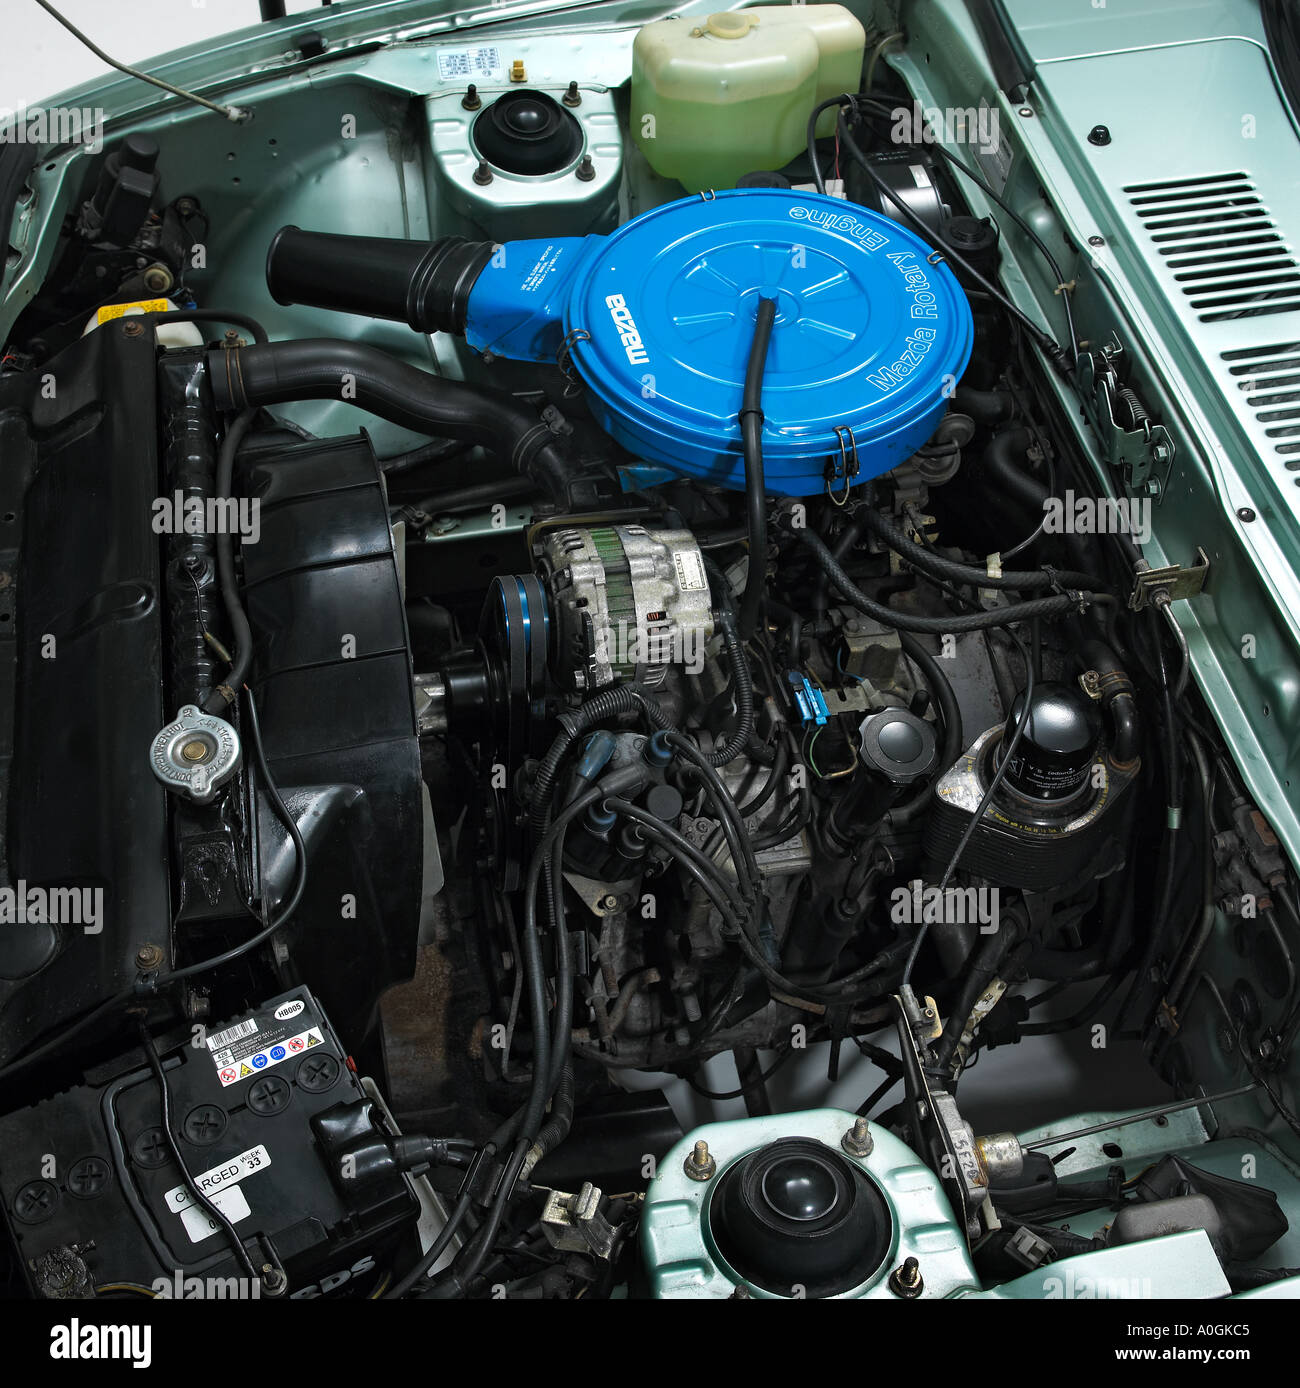 Rx7 Engine Used: Mazda Rx7 Stock Photos & Mazda Rx7 Stock Images